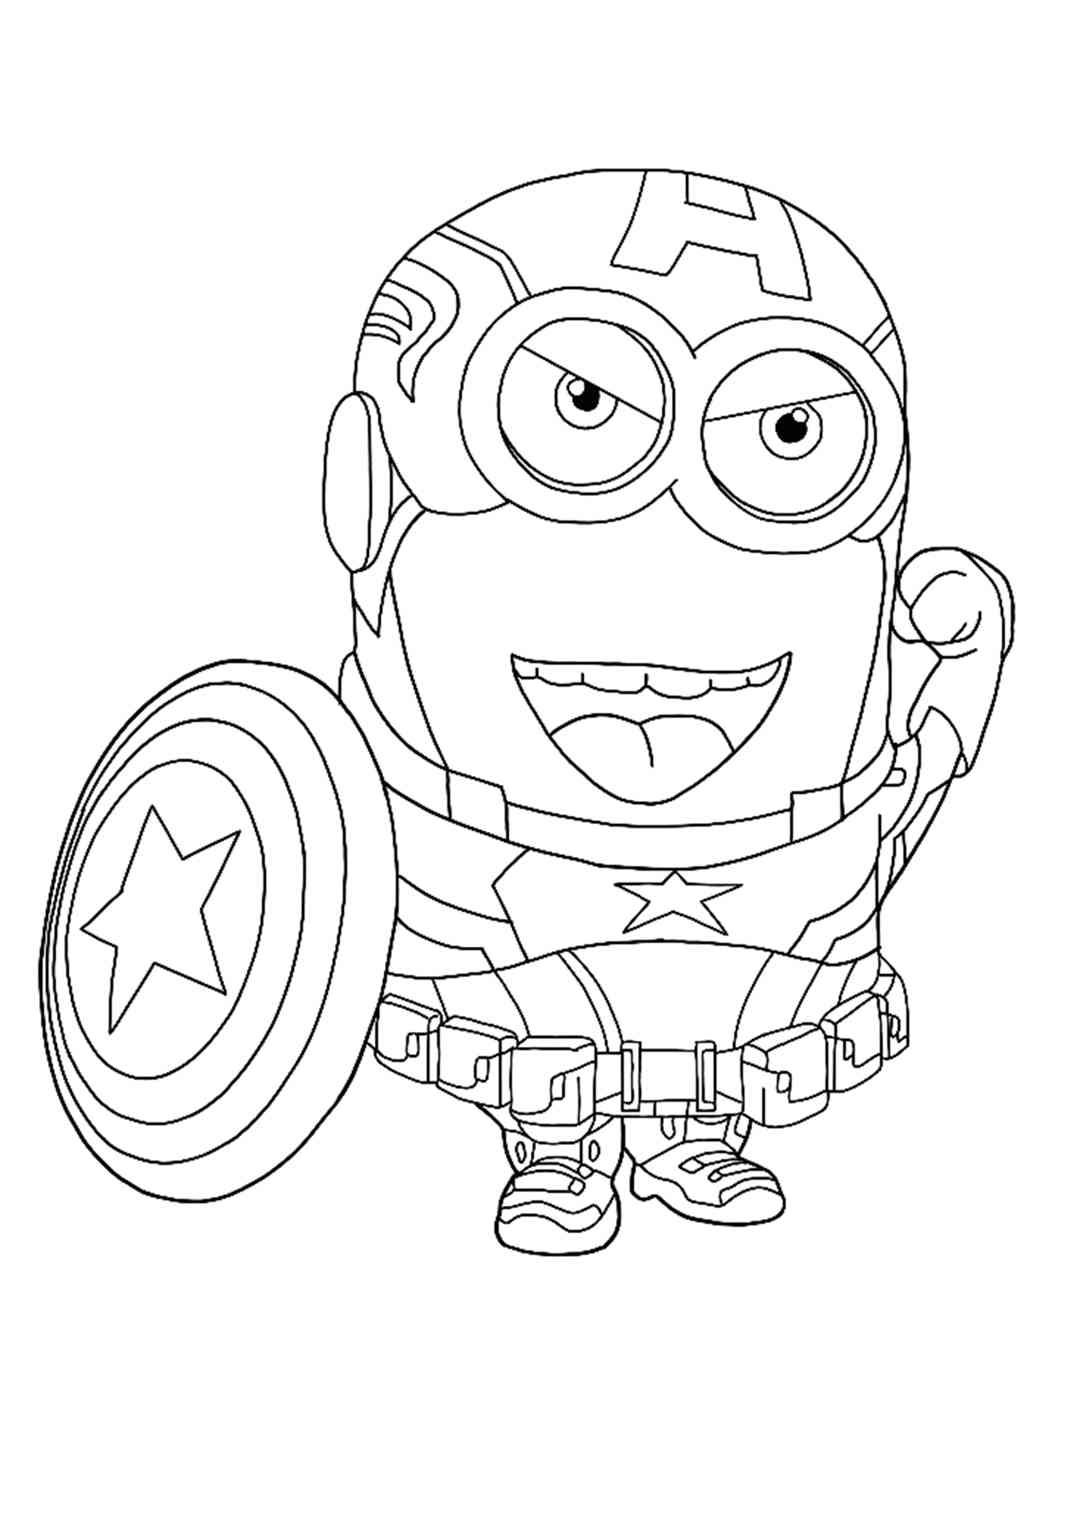 Minion Captain America Coloring Page Minion Coloring Pages Avengers Coloring Pages Superhero Coloring Pages